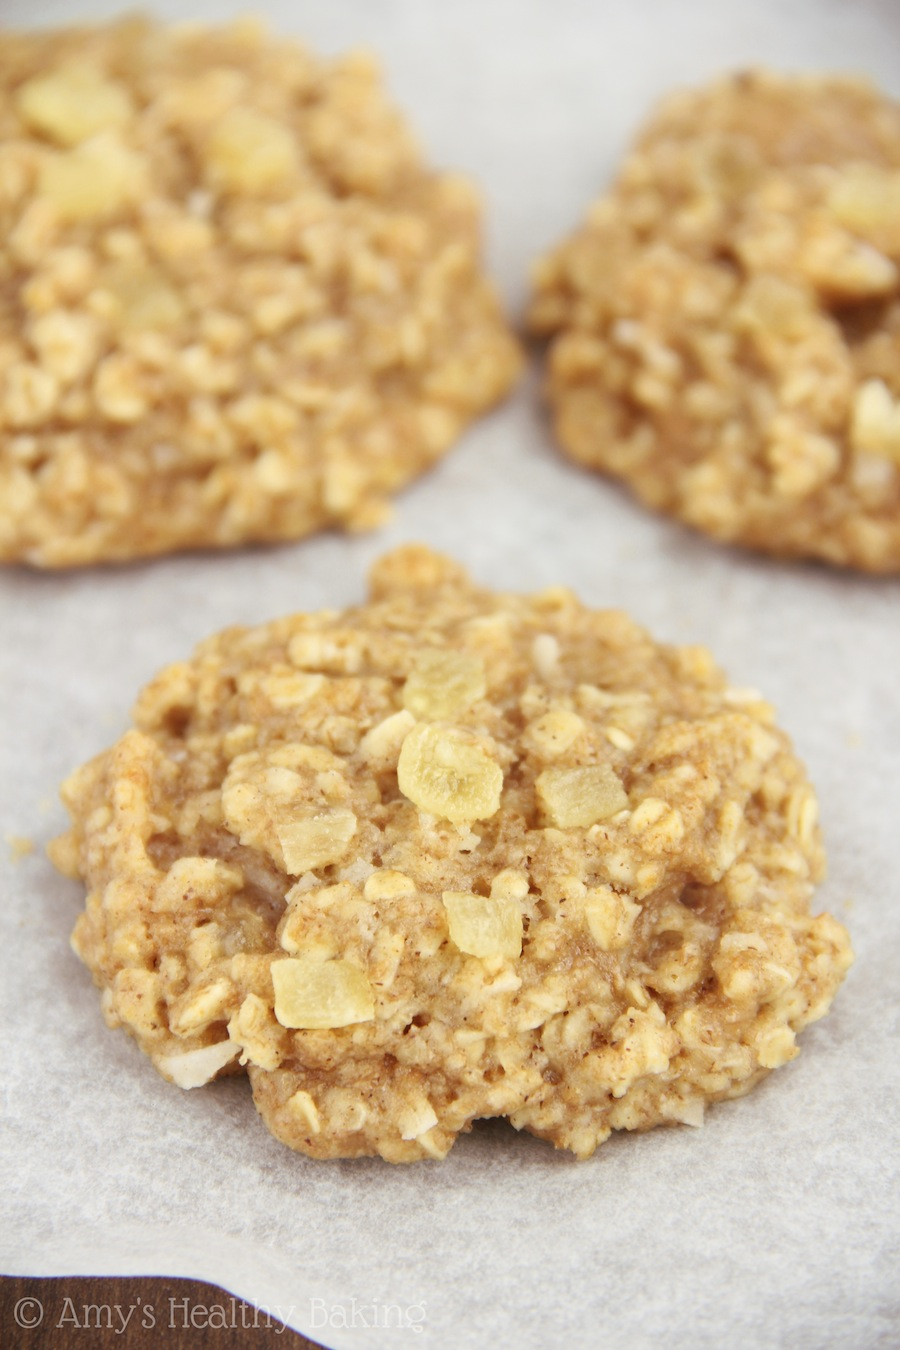 Pineapple Coconut Oatmeal Cookies | Amy's Healthy Baking